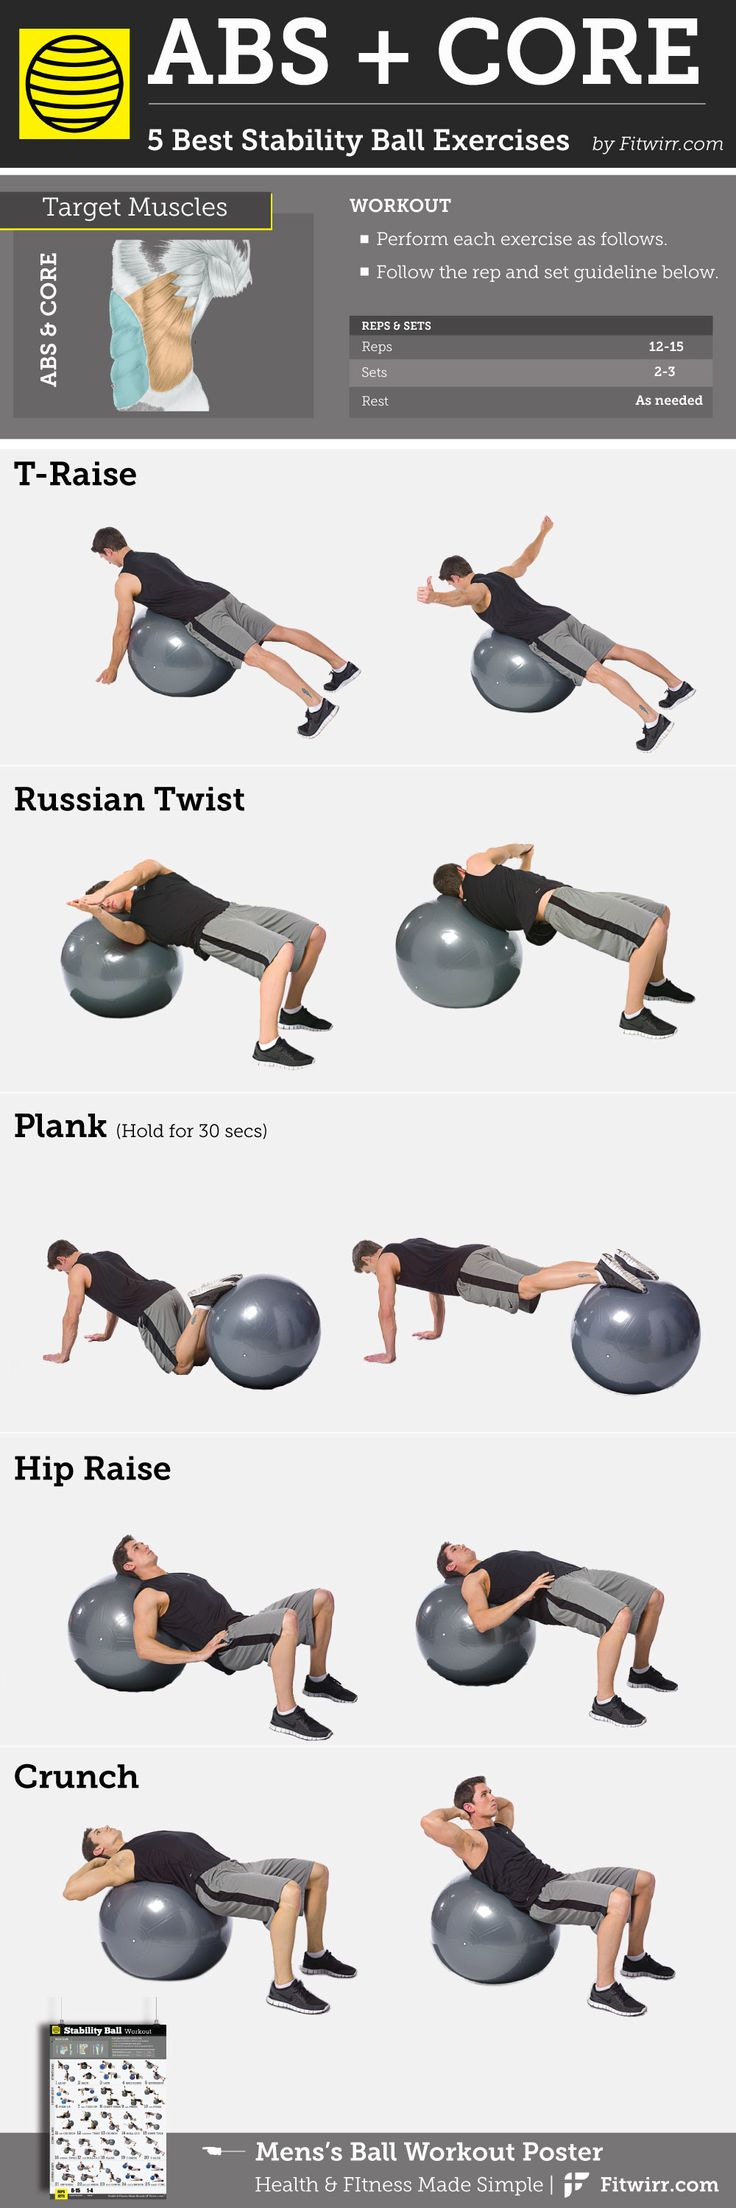 5 Best Abs and Core Exercises With a Stability Ball for Men